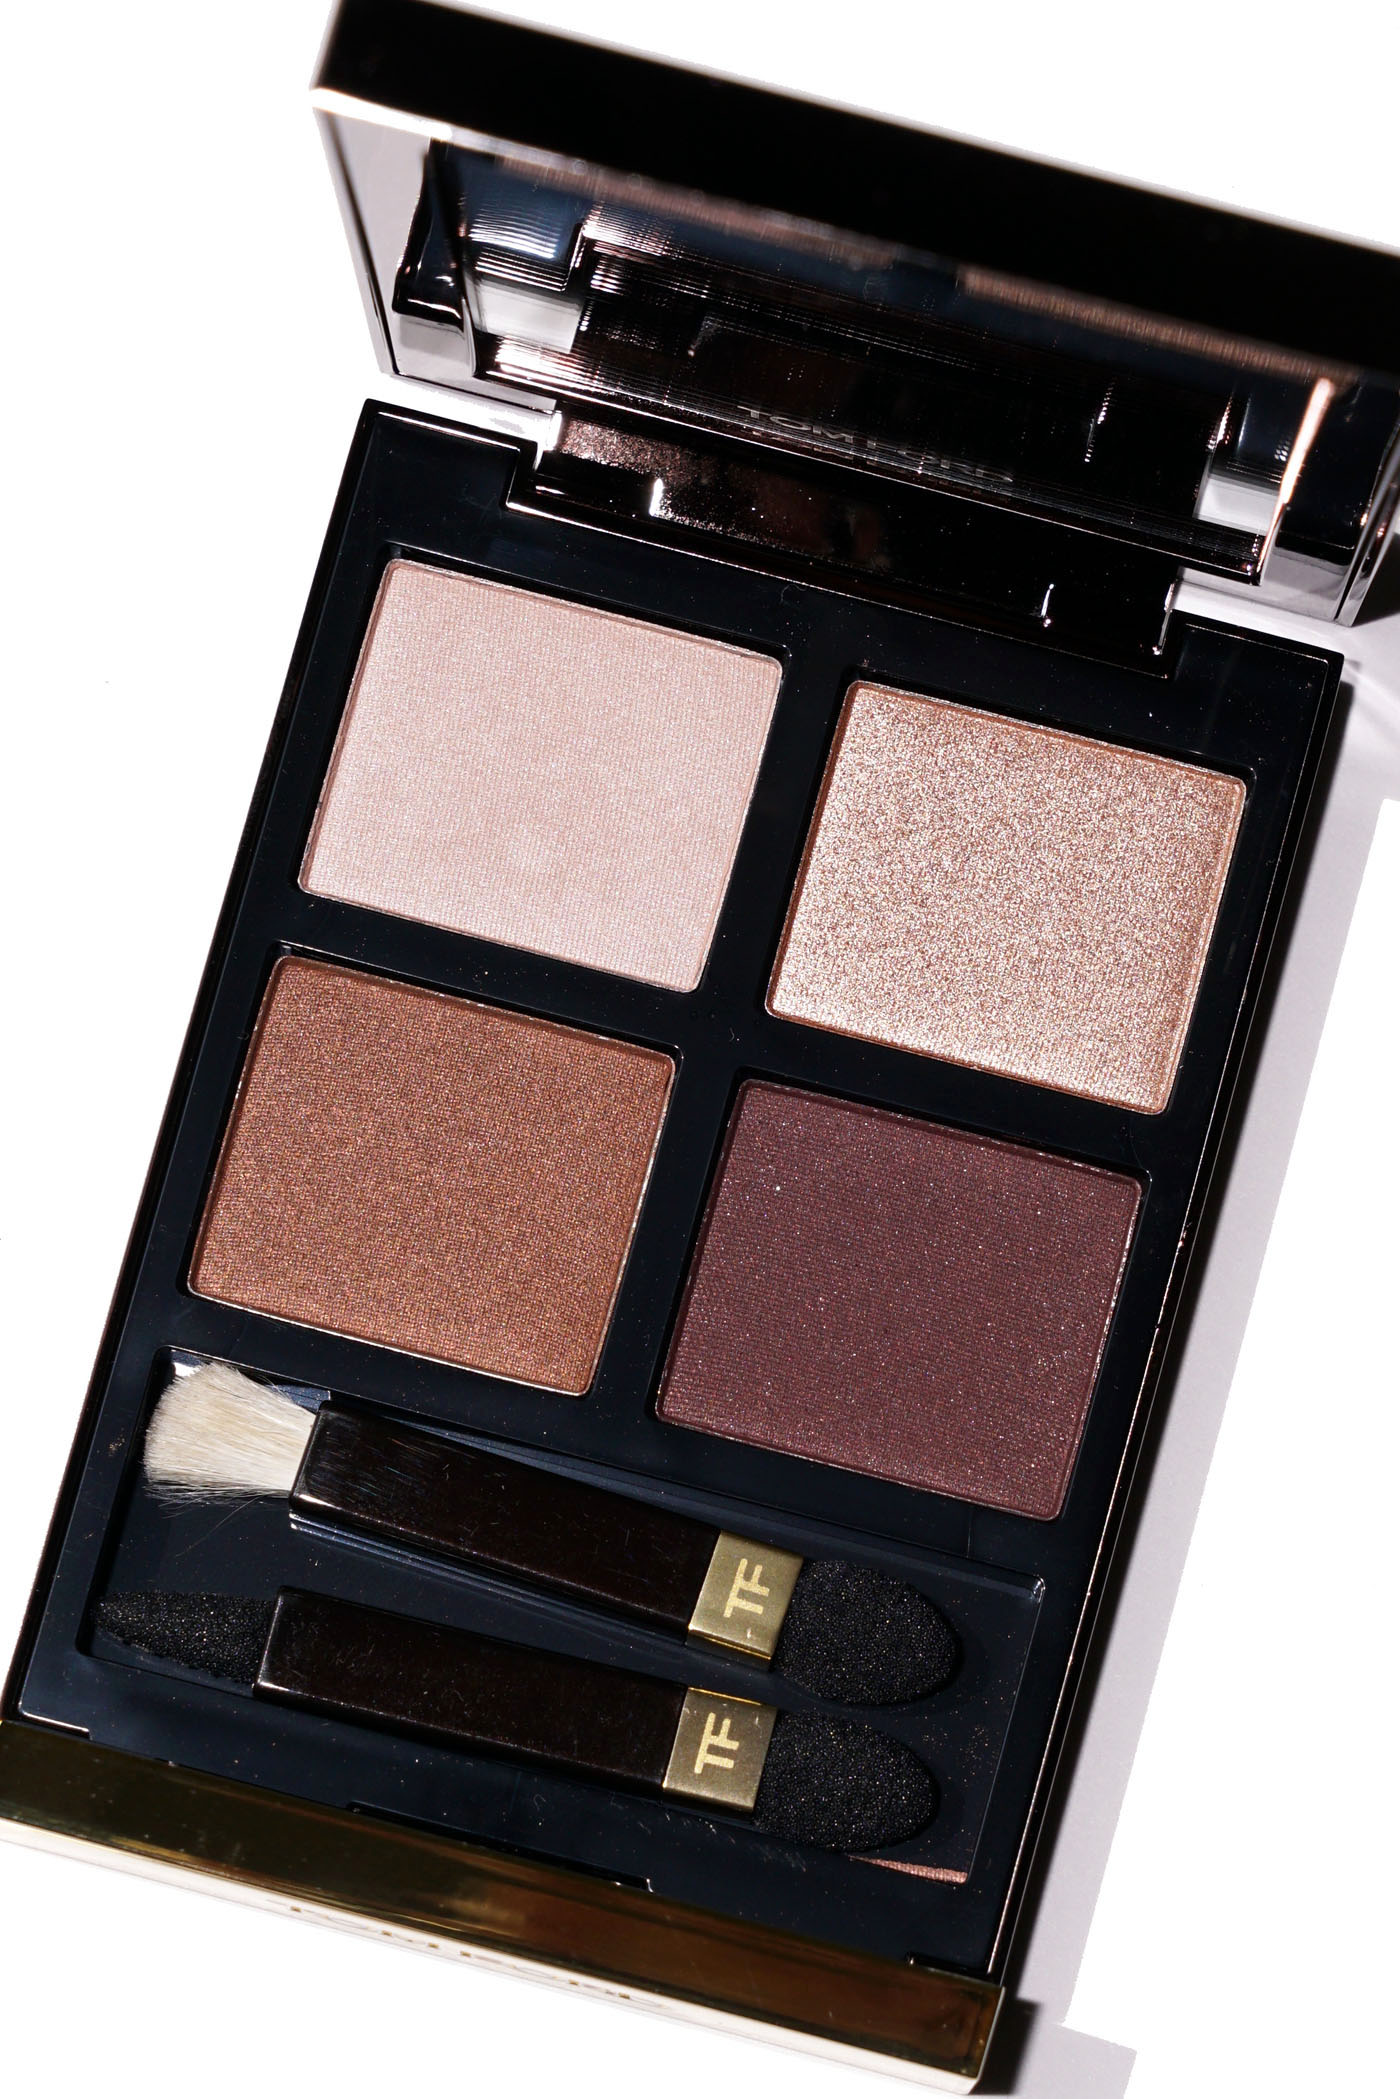 Tom Ford Iris Bronze Eyeshadow Quad Critique | Le livre de beauté